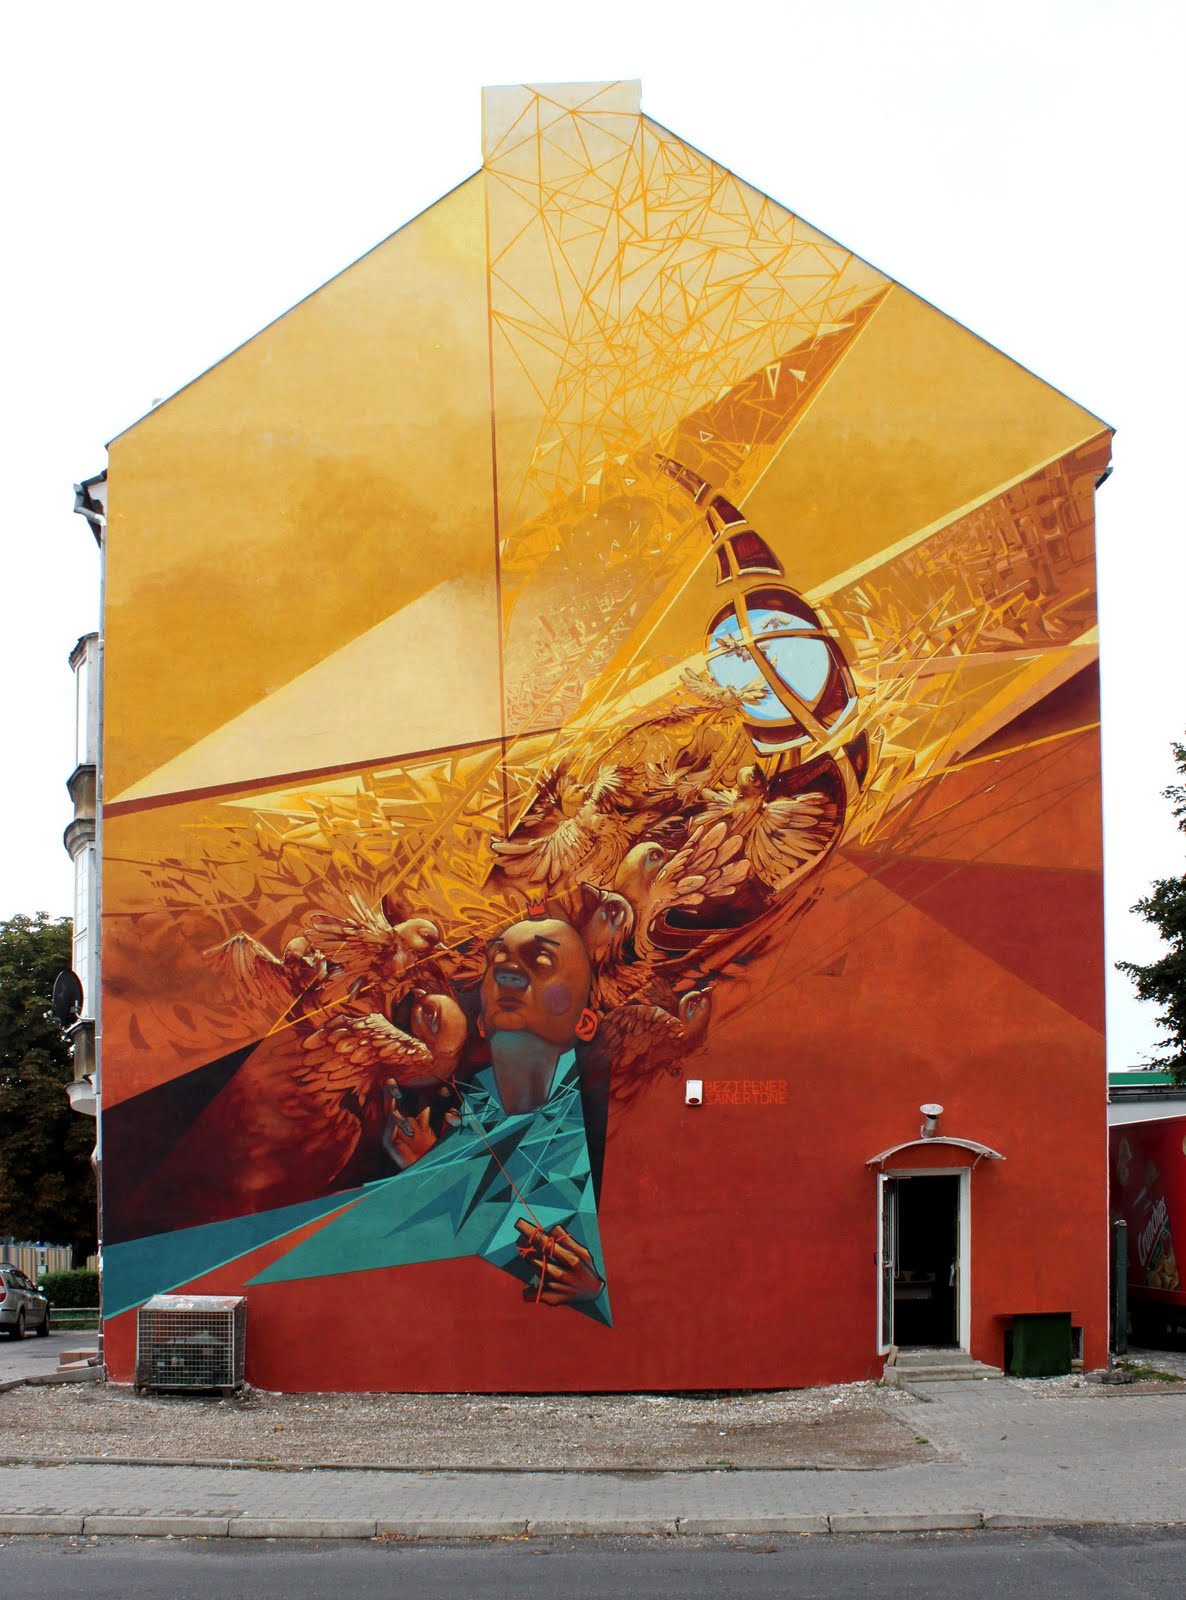 Amazing graffiti by Przemek Blejzyk